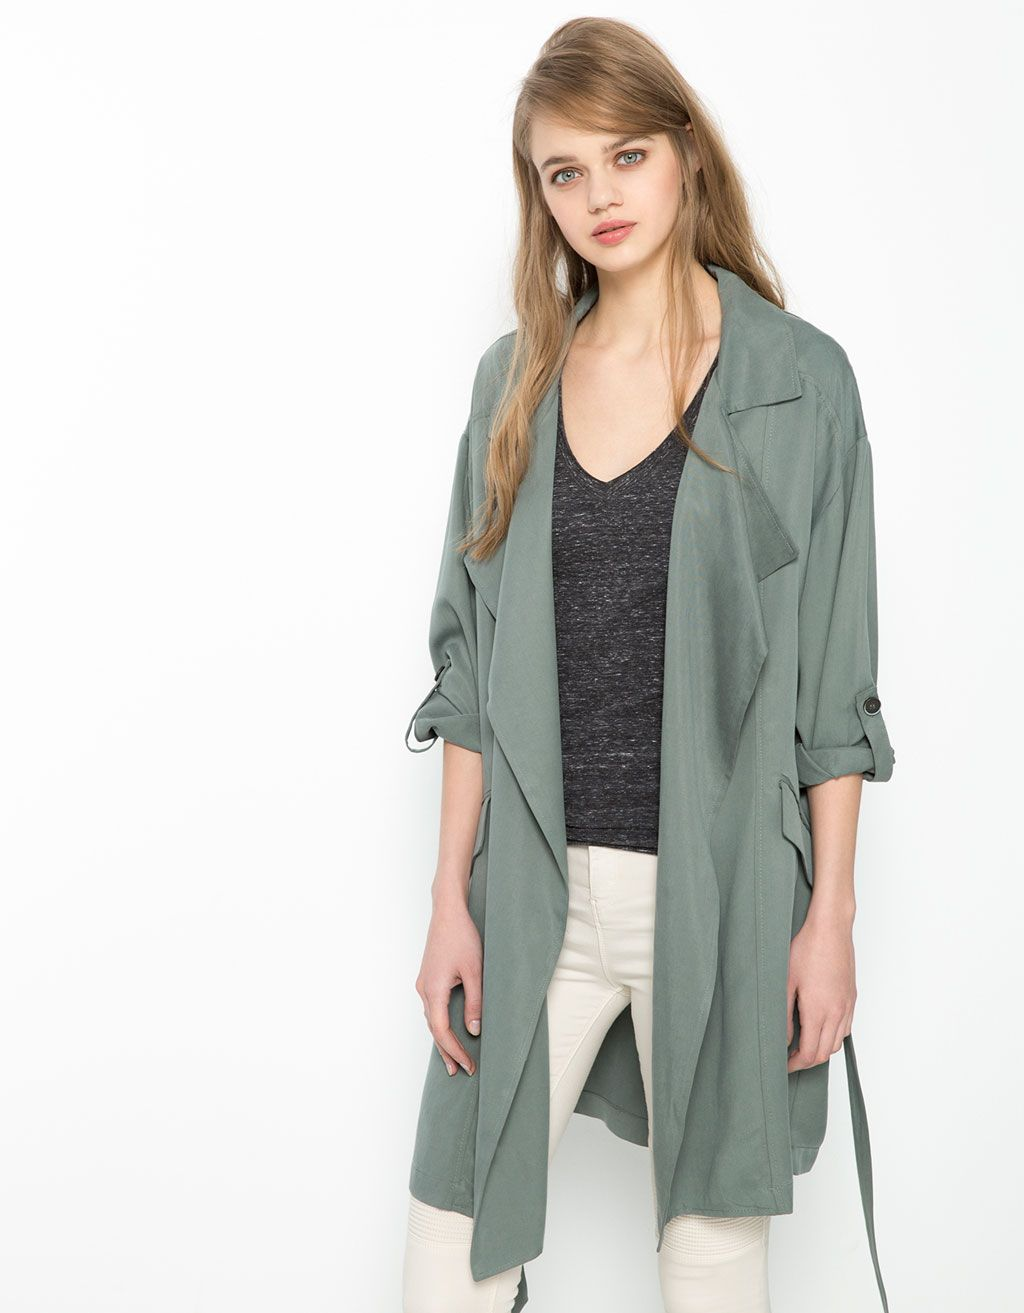 3526fd9068 Tencel trench coat in 2019 | Spring Style | Coat, Jackets, Fashion